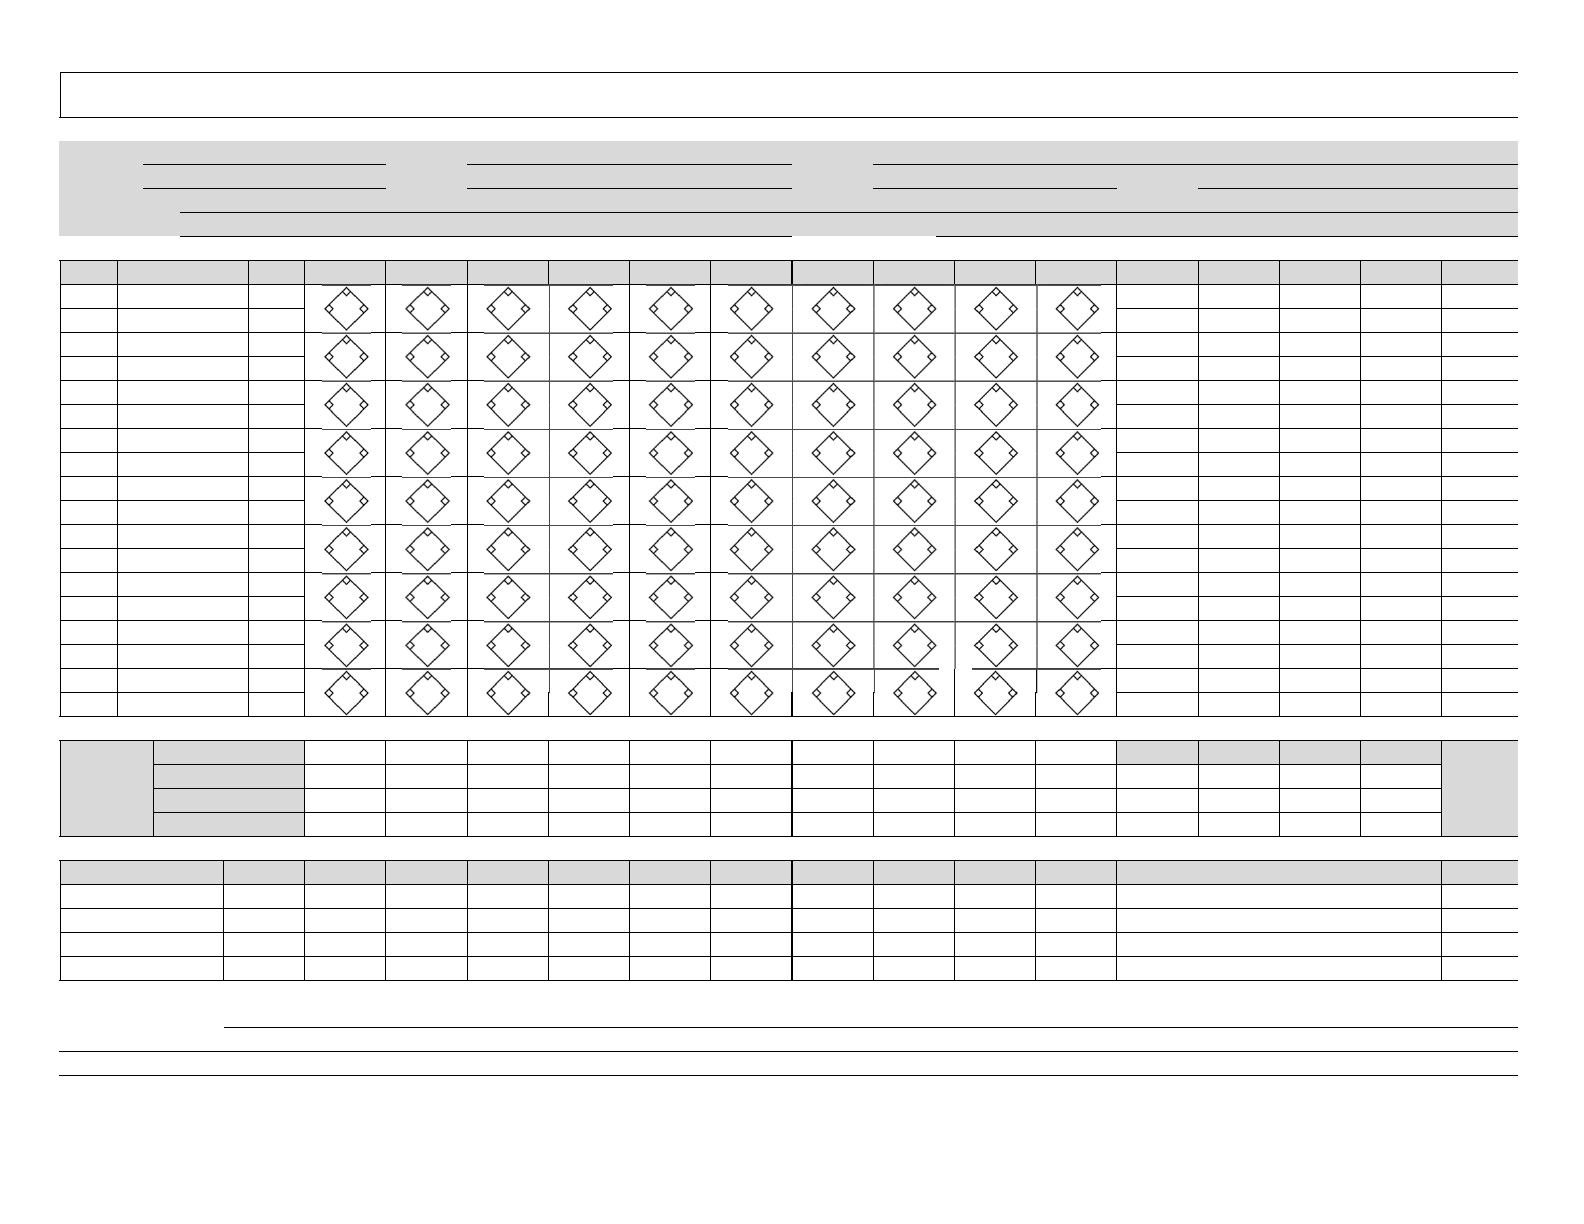 Baseball Scoresheet Example Free Download